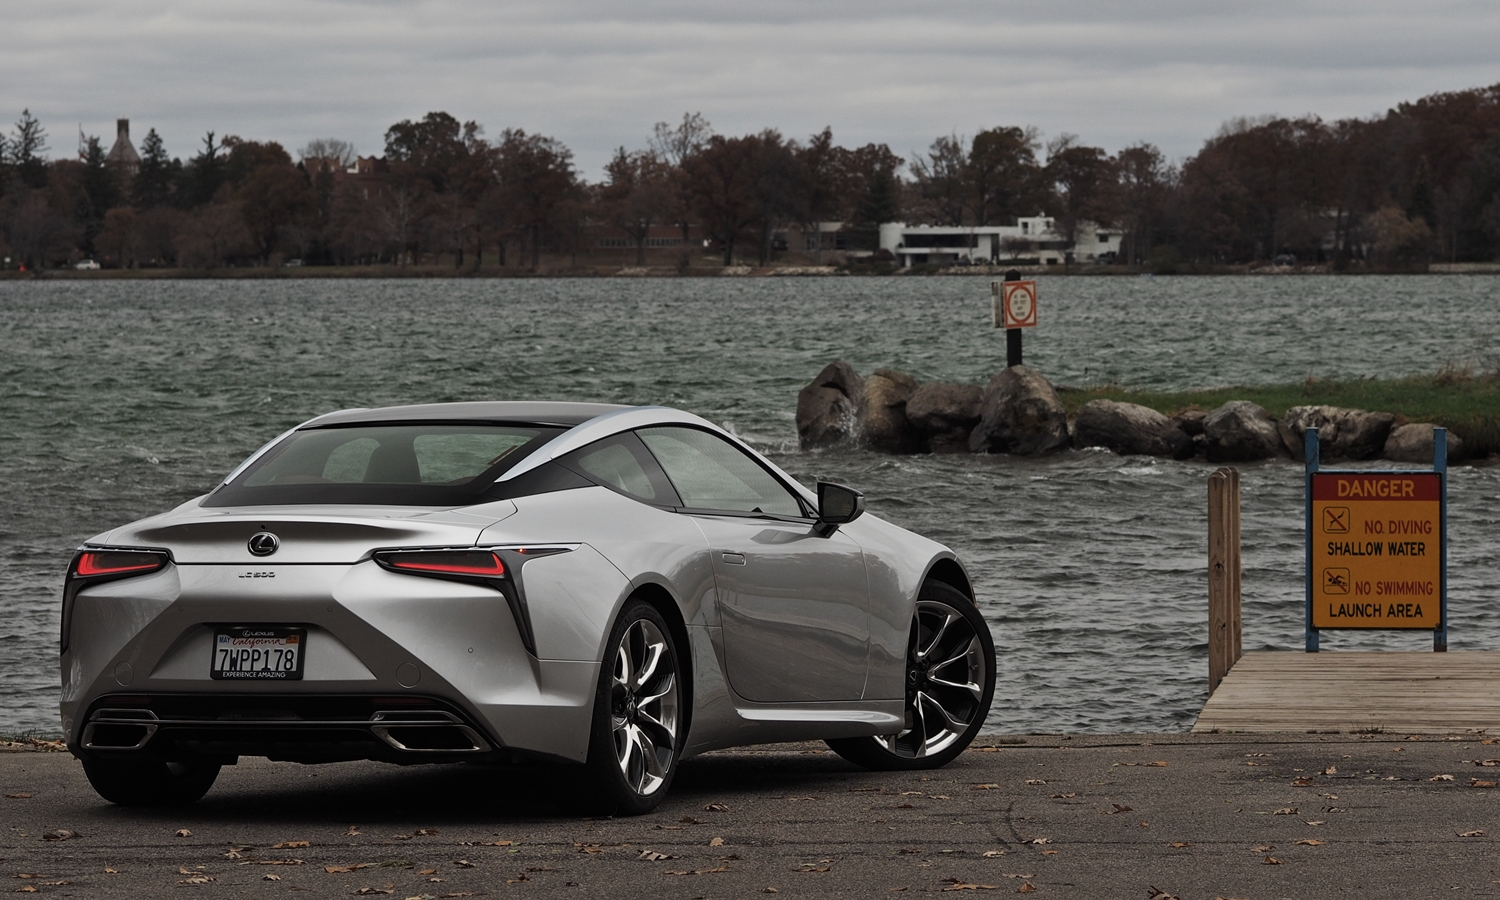 Lexus LC Photos: Lexus LC 500 rear view